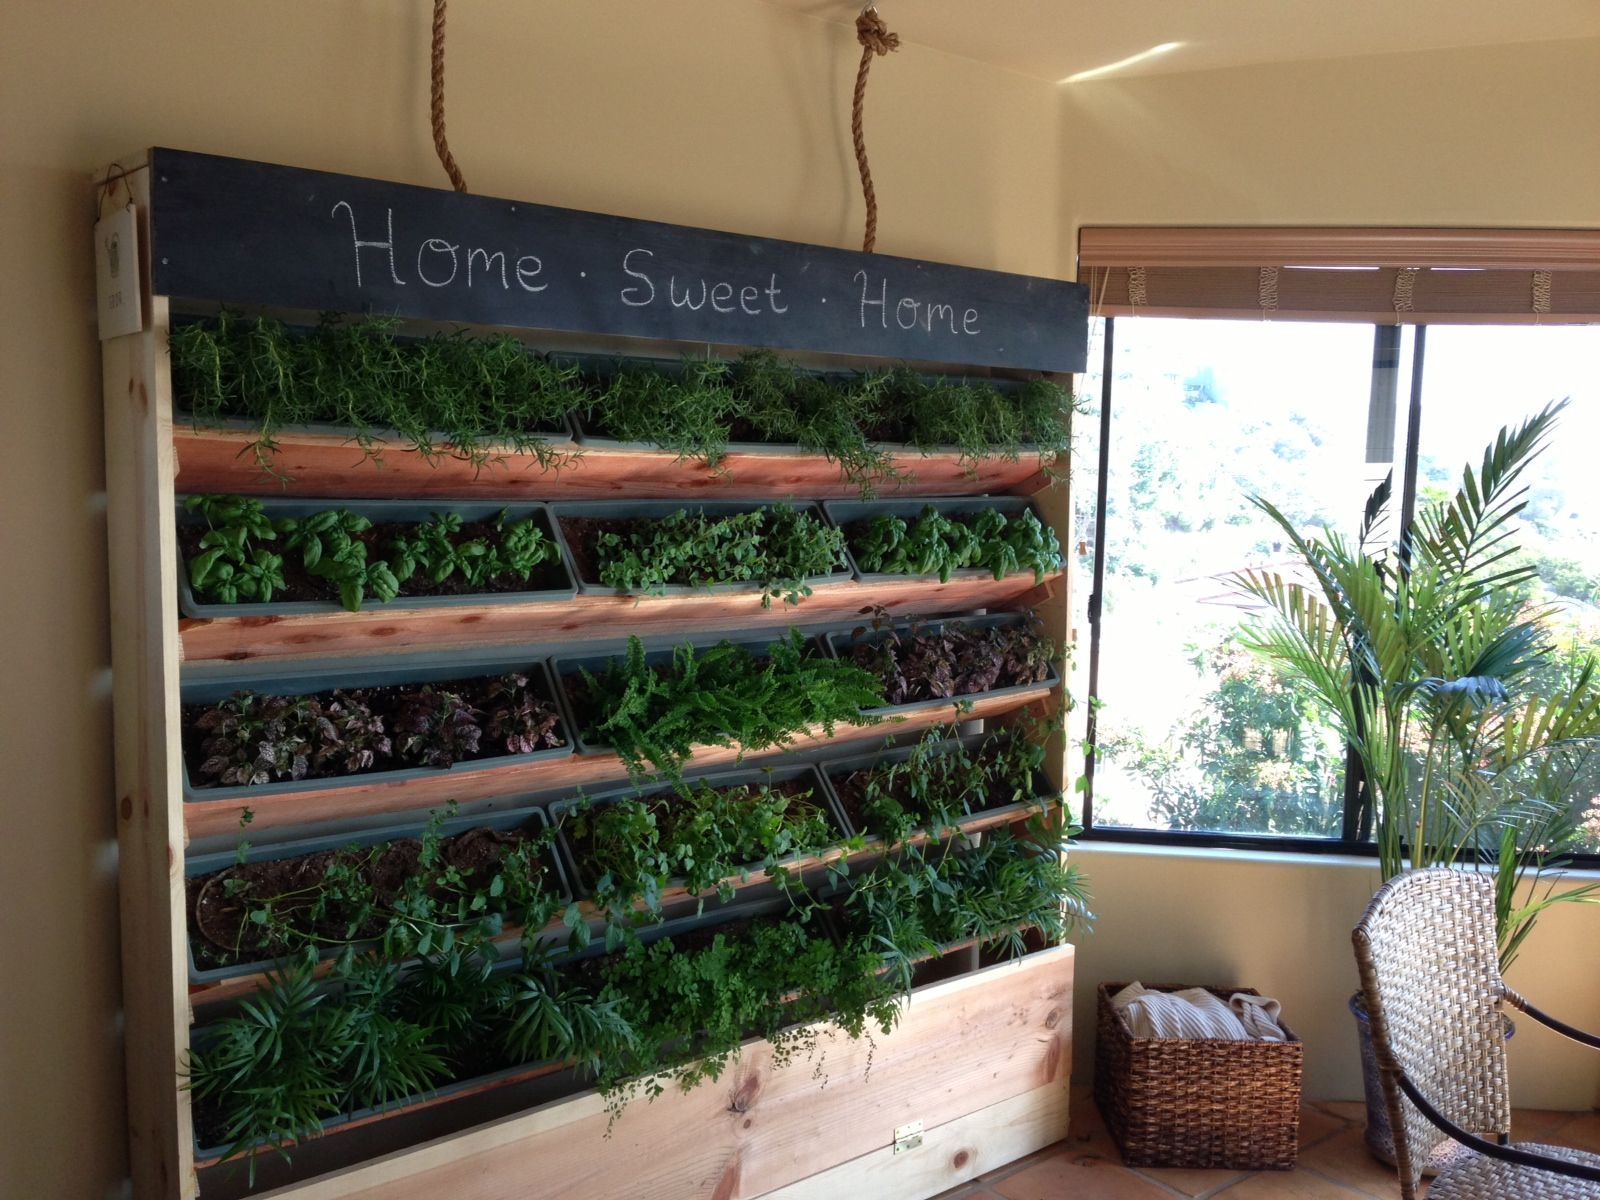 Herb Wall Diy 6 Foot Indoor Vertical Garden Diy Pinterest Indoor